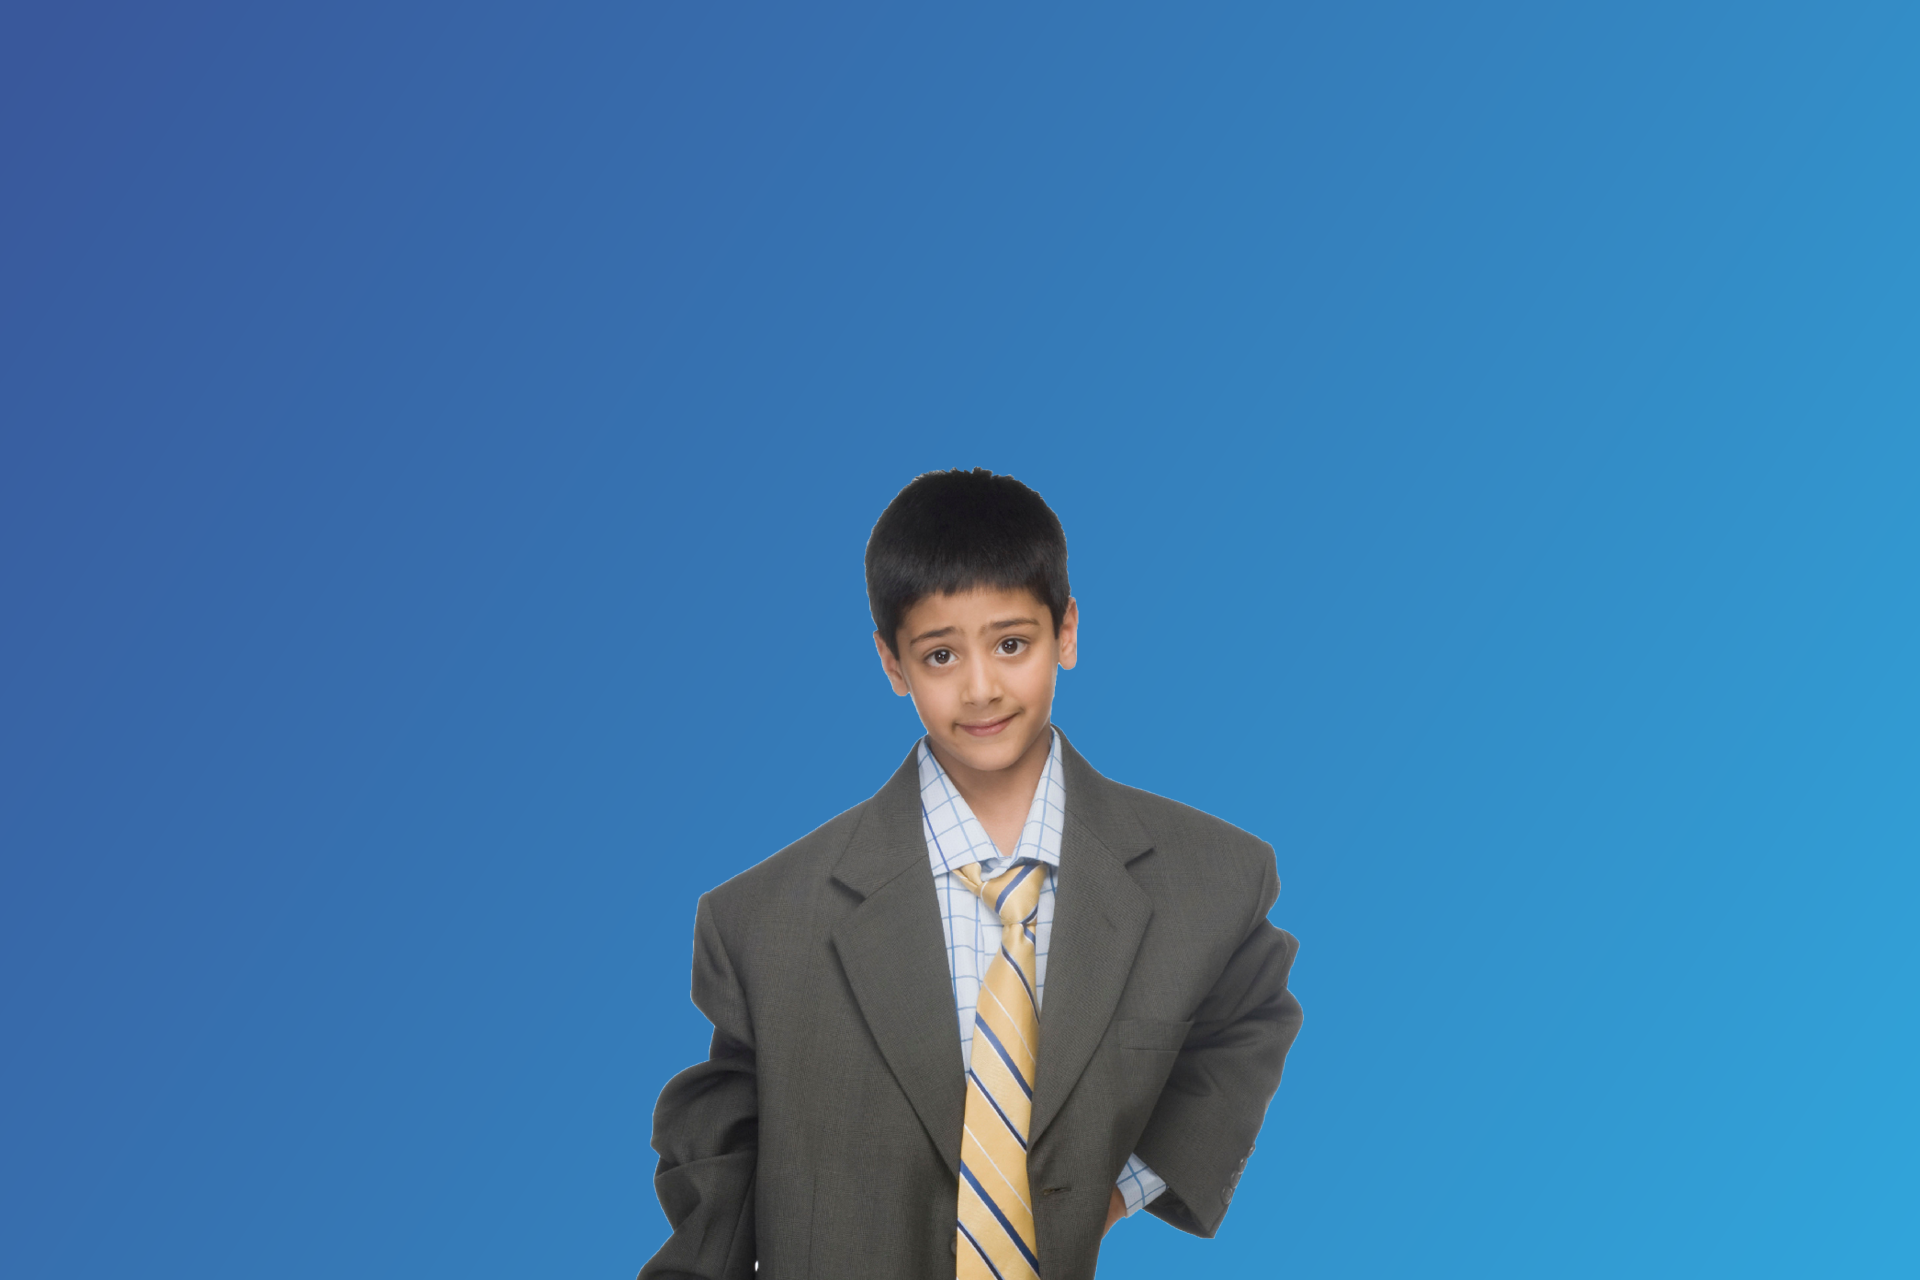 Young boy in an oversized suit